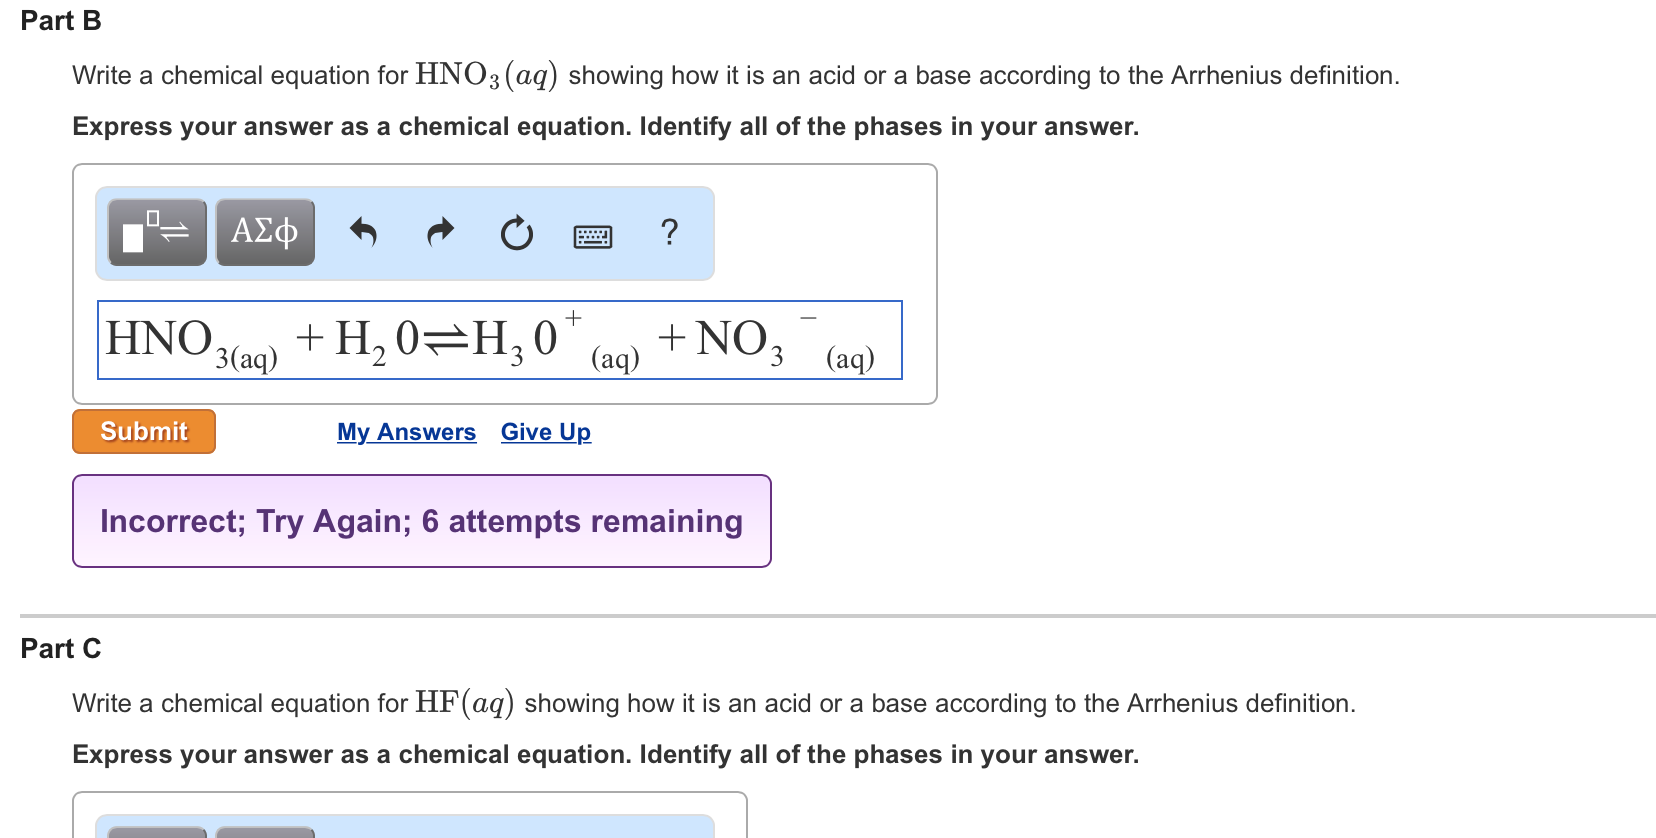 solved: write a chemical equation for hno3(aq) showing how